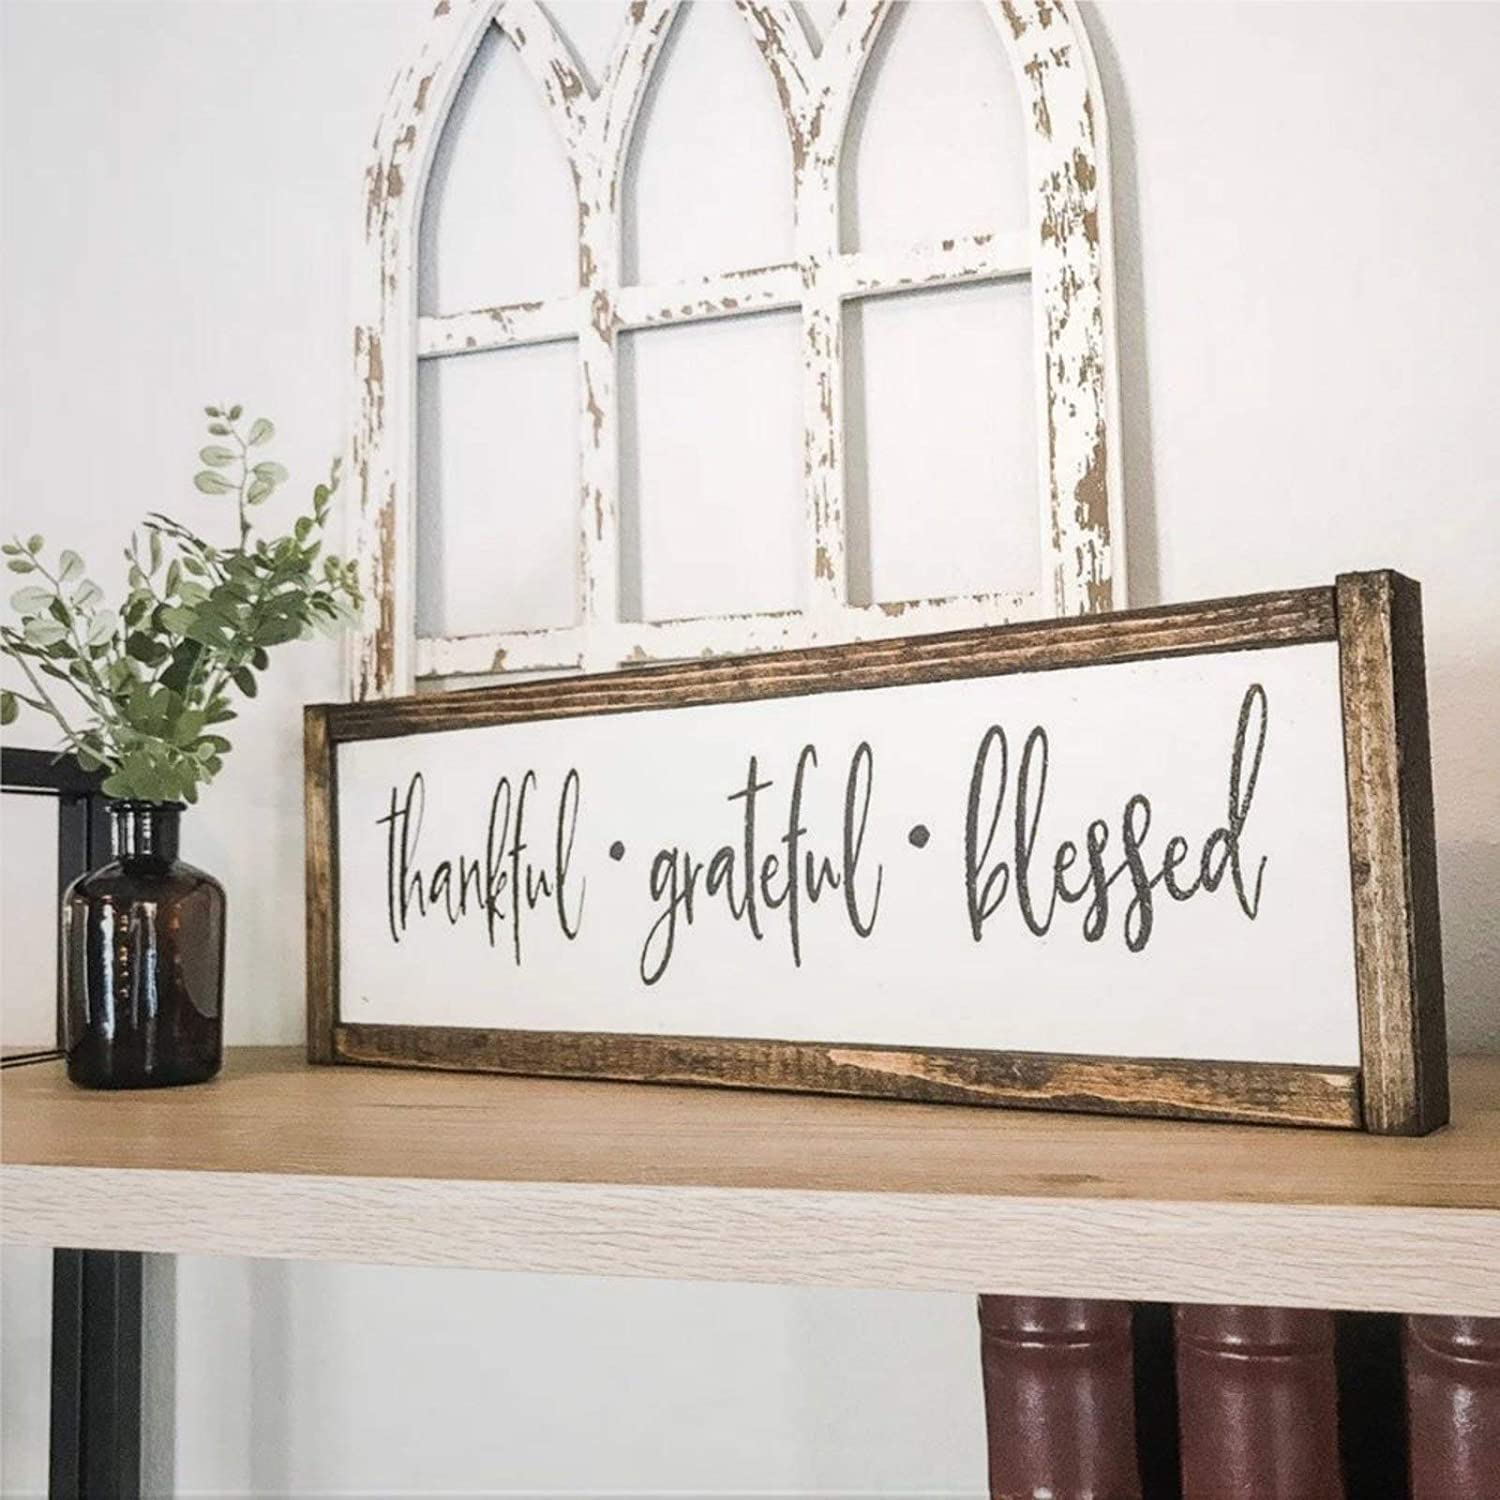 BYRON HOYLE Thankful Grateful Blessed Framed Wood Sign, Wooden Wall Hanging Art, Inspirational Farmhouse Wall Plaque, Rustic Home Decor for Nursery, Porch, Gallery Wall, Housewarming